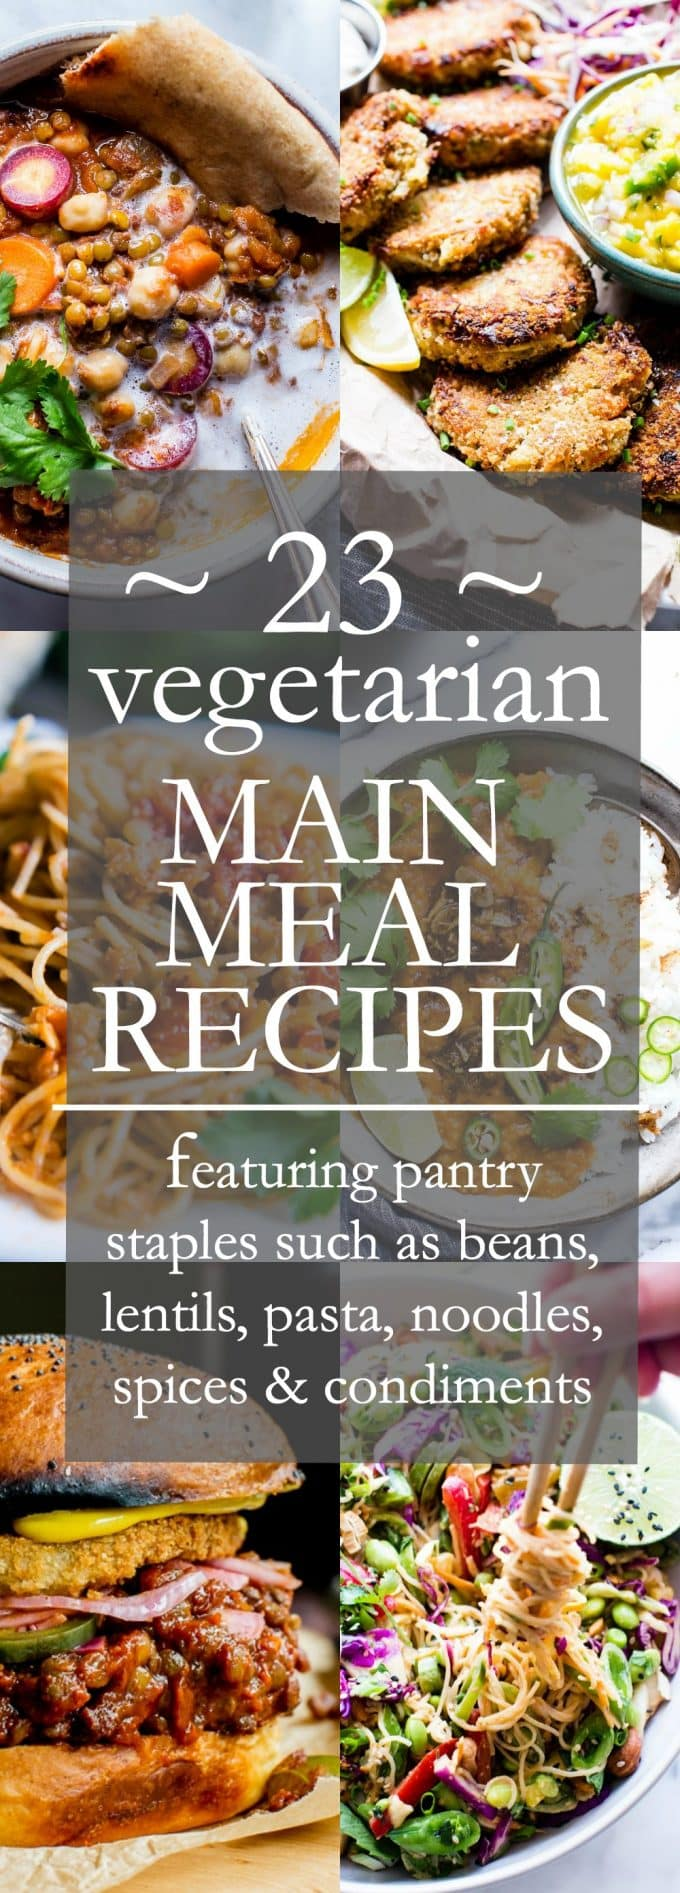 Pinterest Pin for Vegetarian Main Meal Recipes from the pantry.